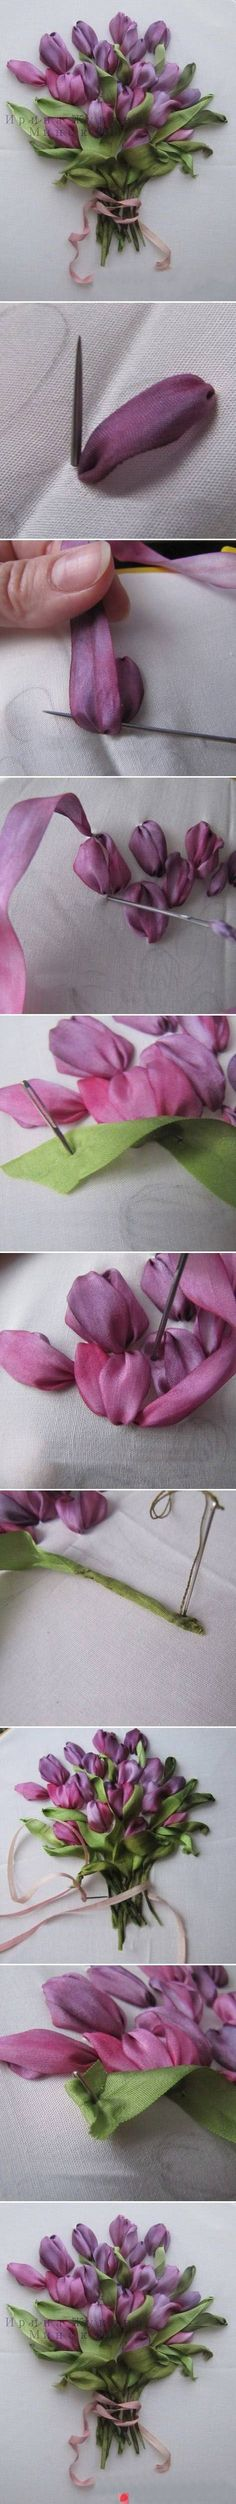 Woah! Silk ribbon embroidery tulips demonstrated - exquisite!!!!  Would be esp. pretty done in over-dyed silk ribbon!: